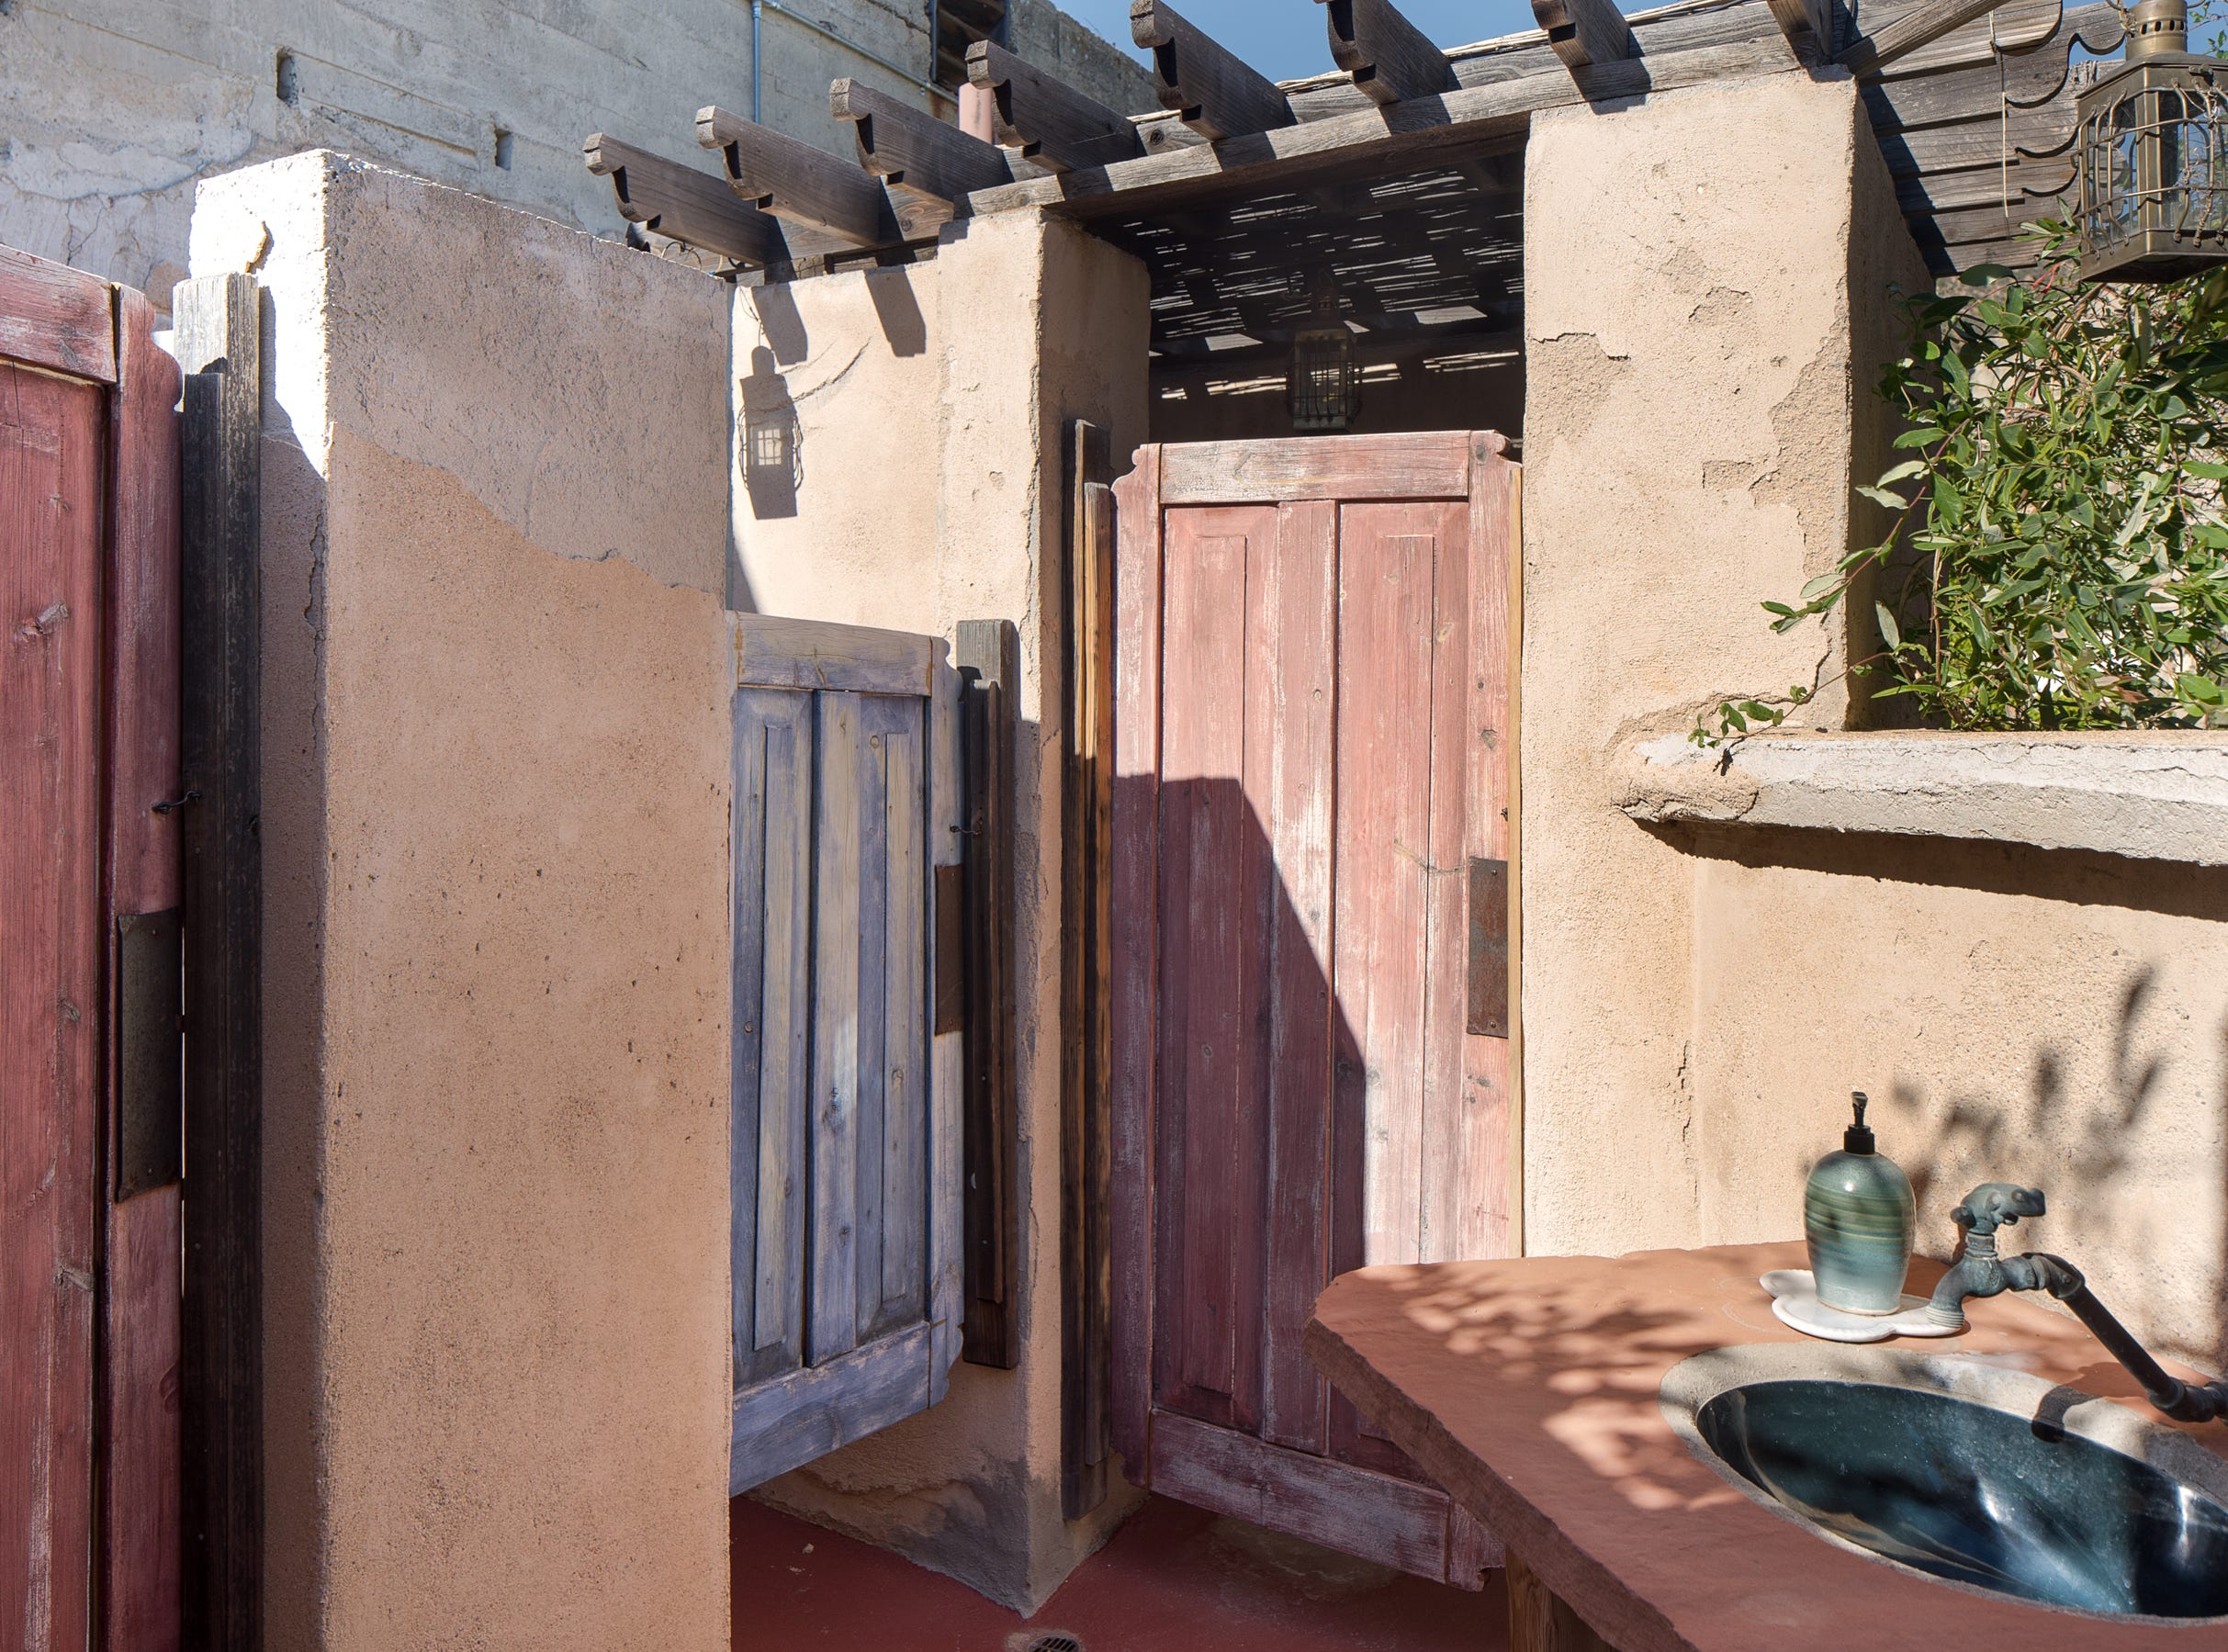 An open-air rooftop bathroom is seen at the 100-year-old former Little Daisy Hotel in Jerome, which was later turned into a single-family home and is now on the market.